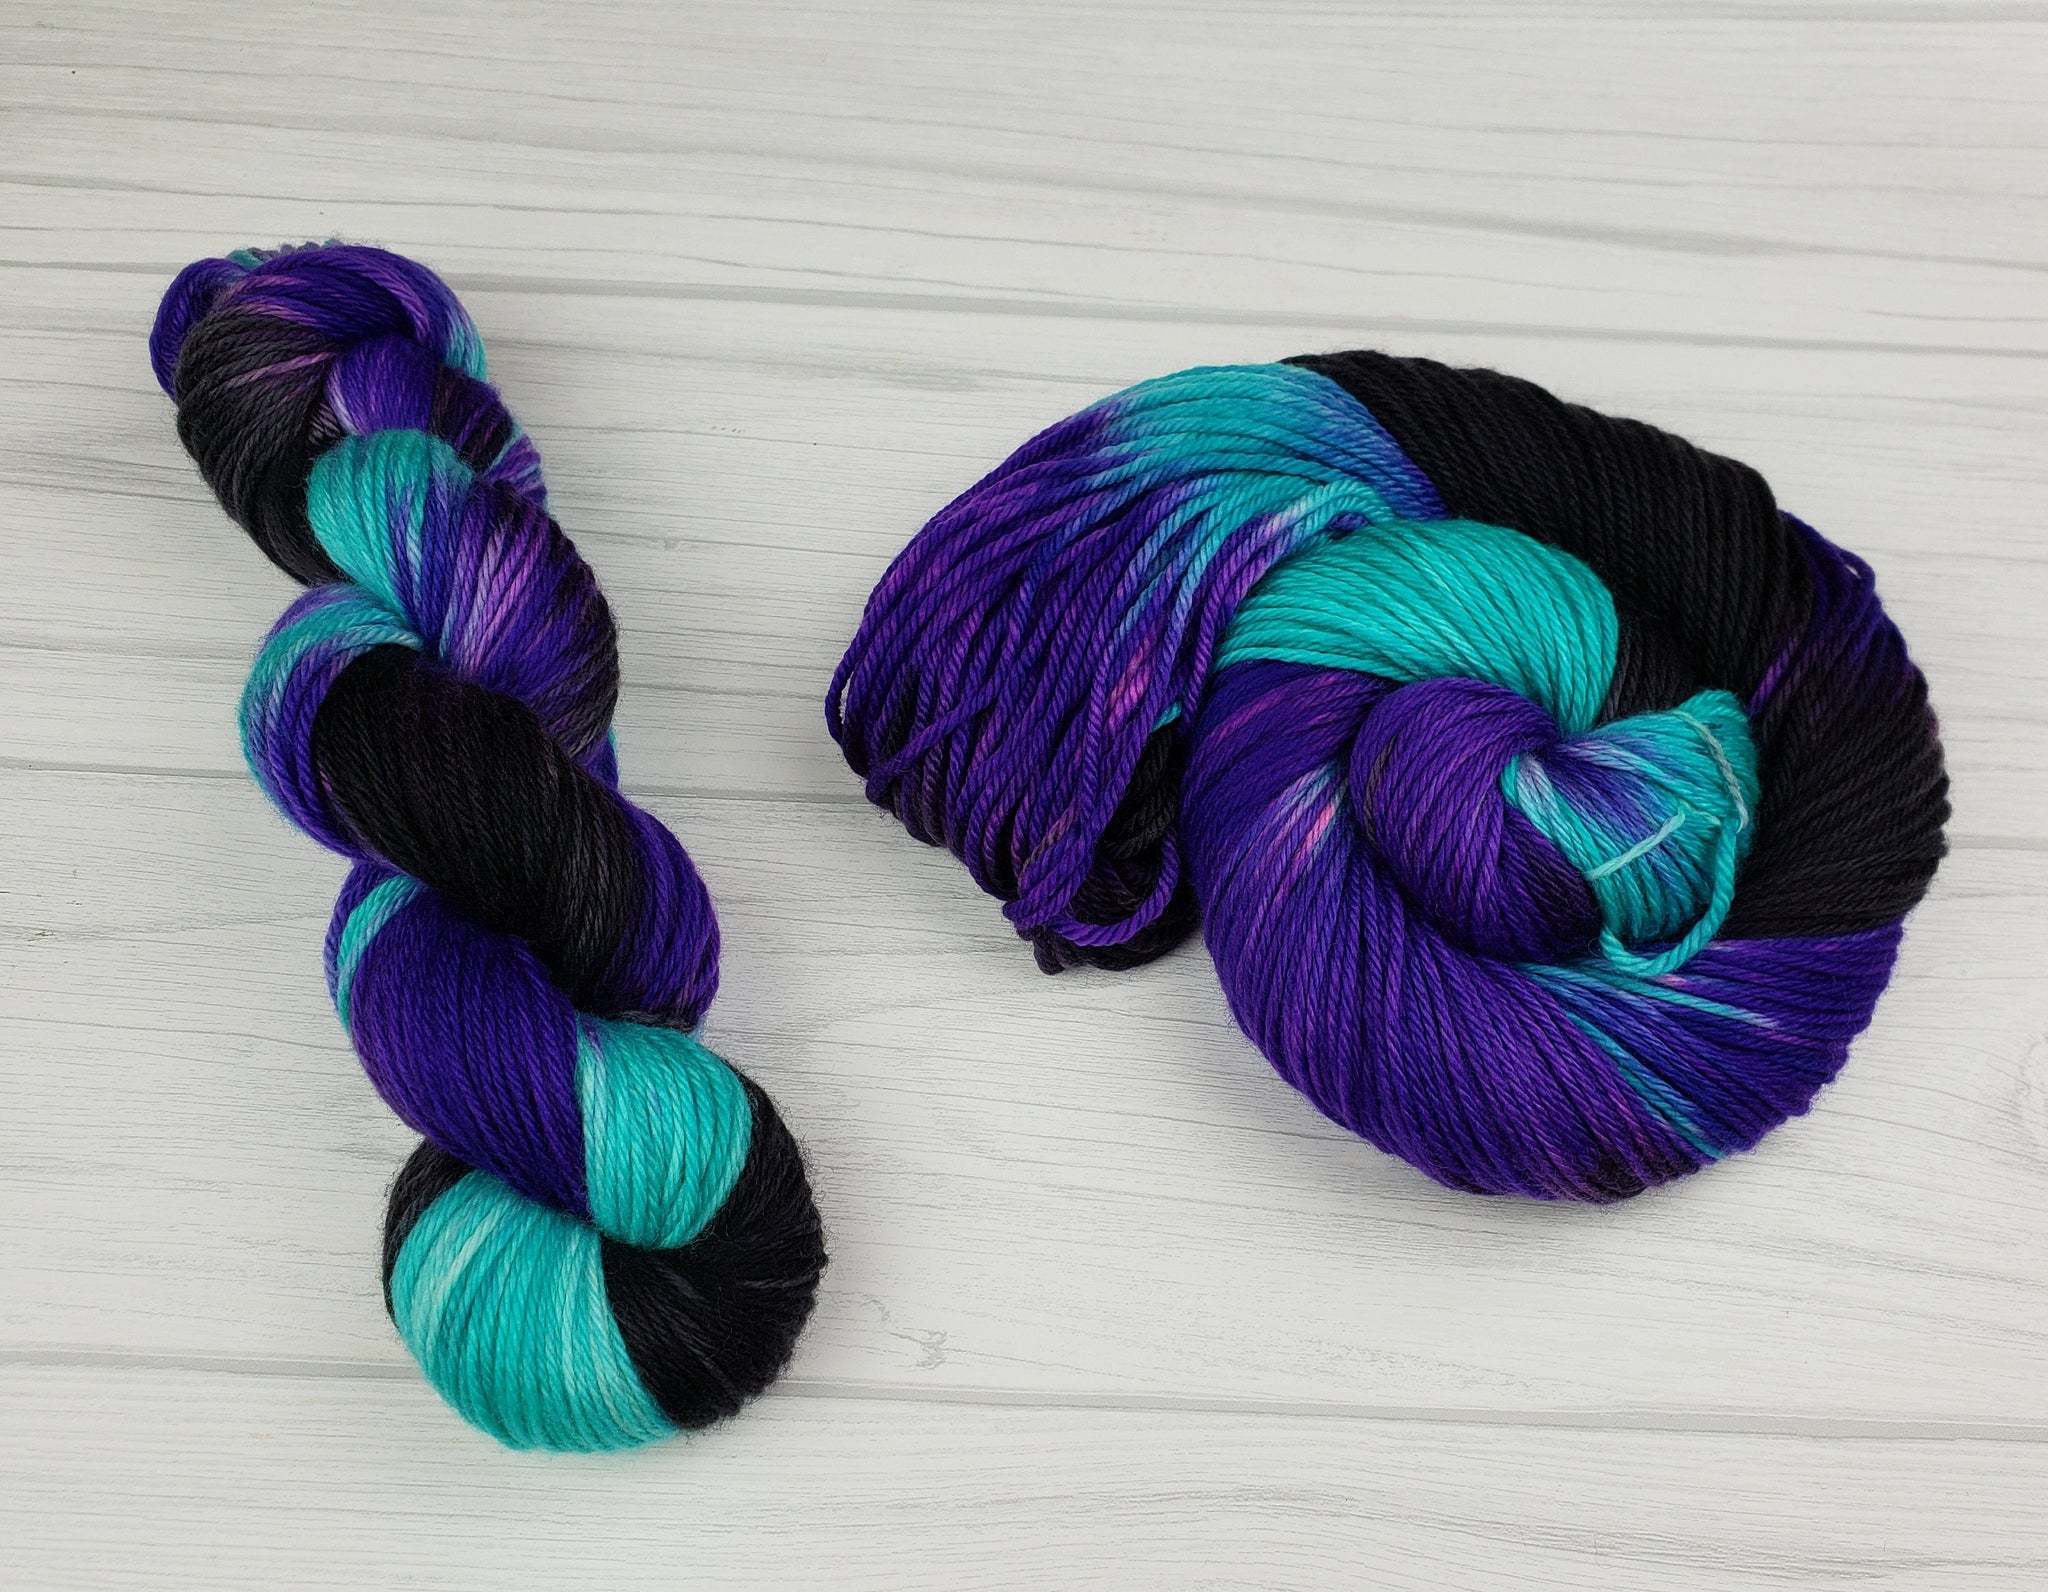 Ursula, Hand Dyed Yarn in Sock Weight - Spindle warps yarns